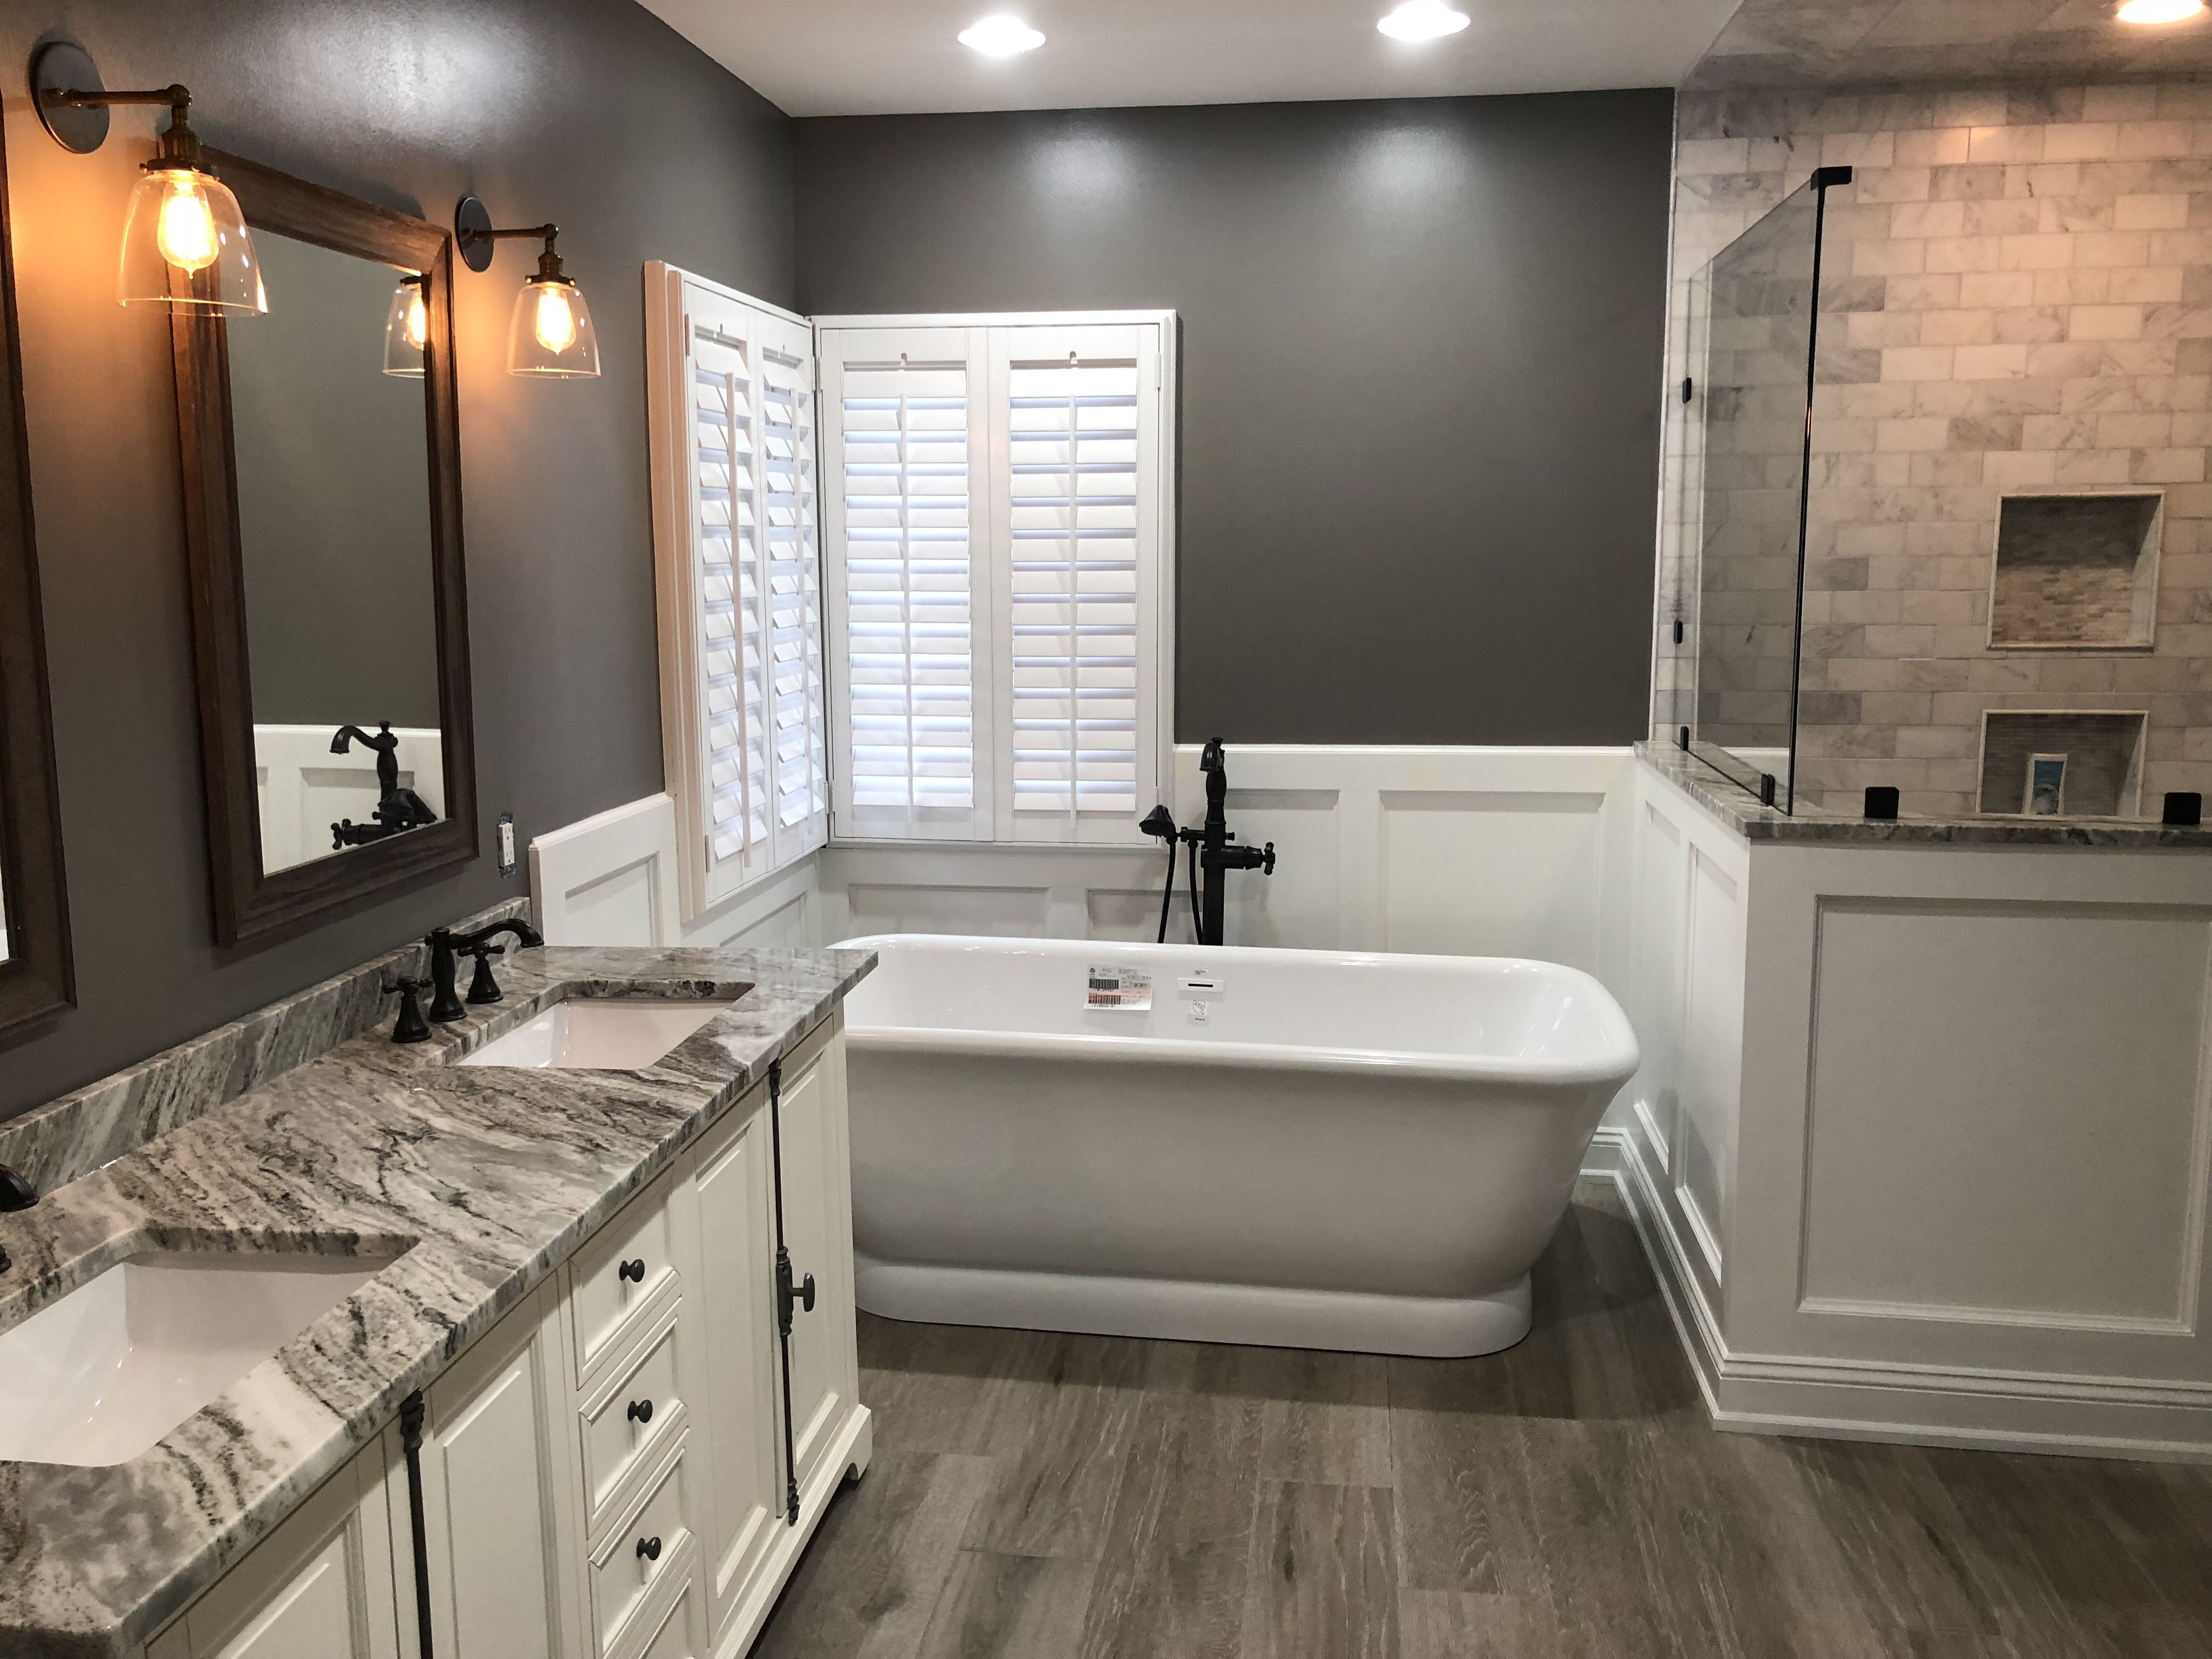 16 Cheap Bathroom Updates with Wow Factor | Simple ...